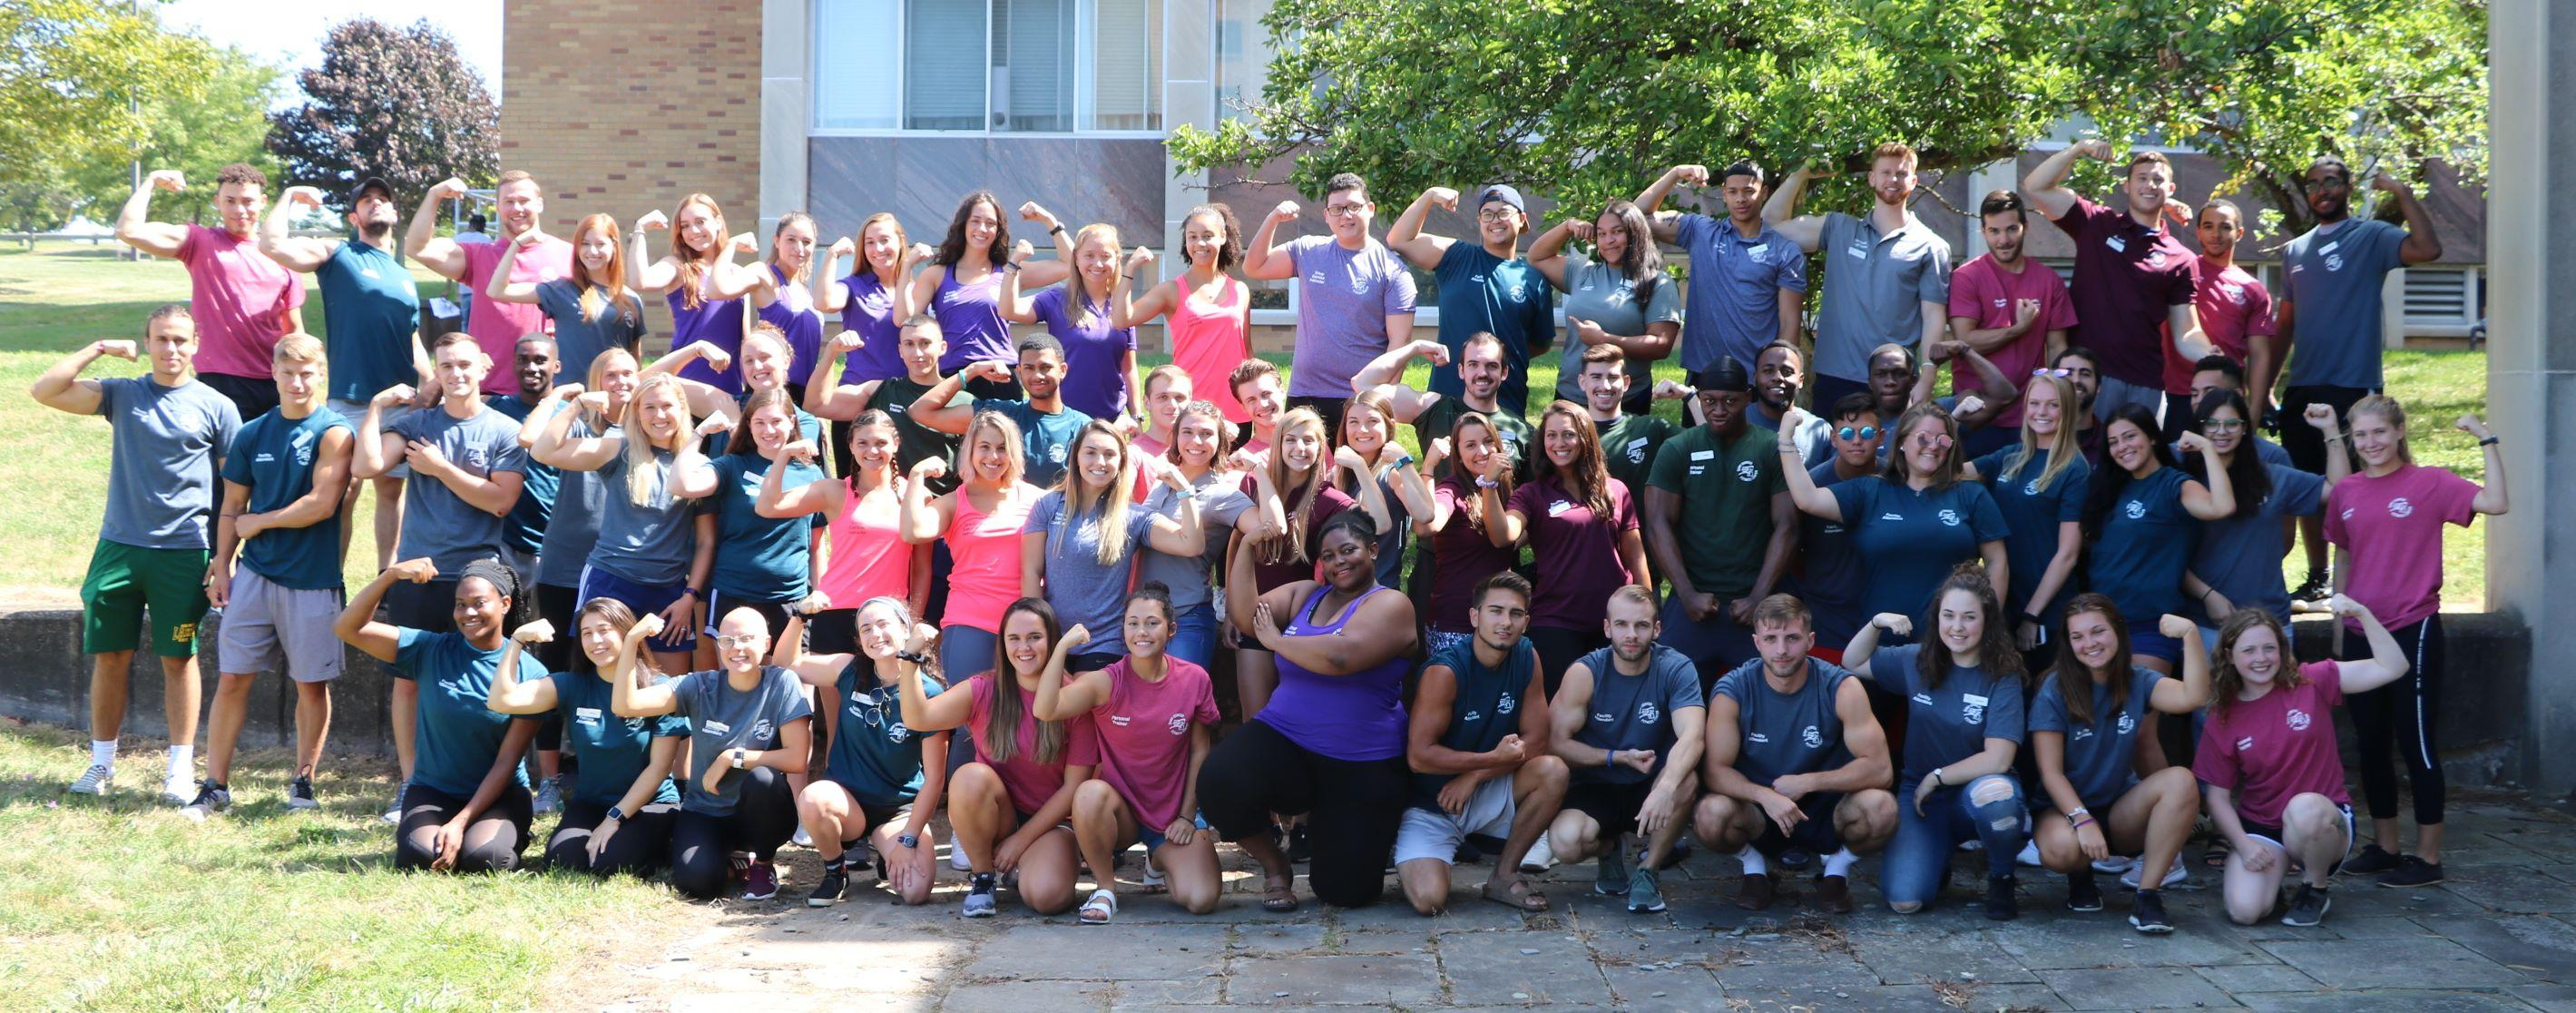 Picture of Fitness Center Staff